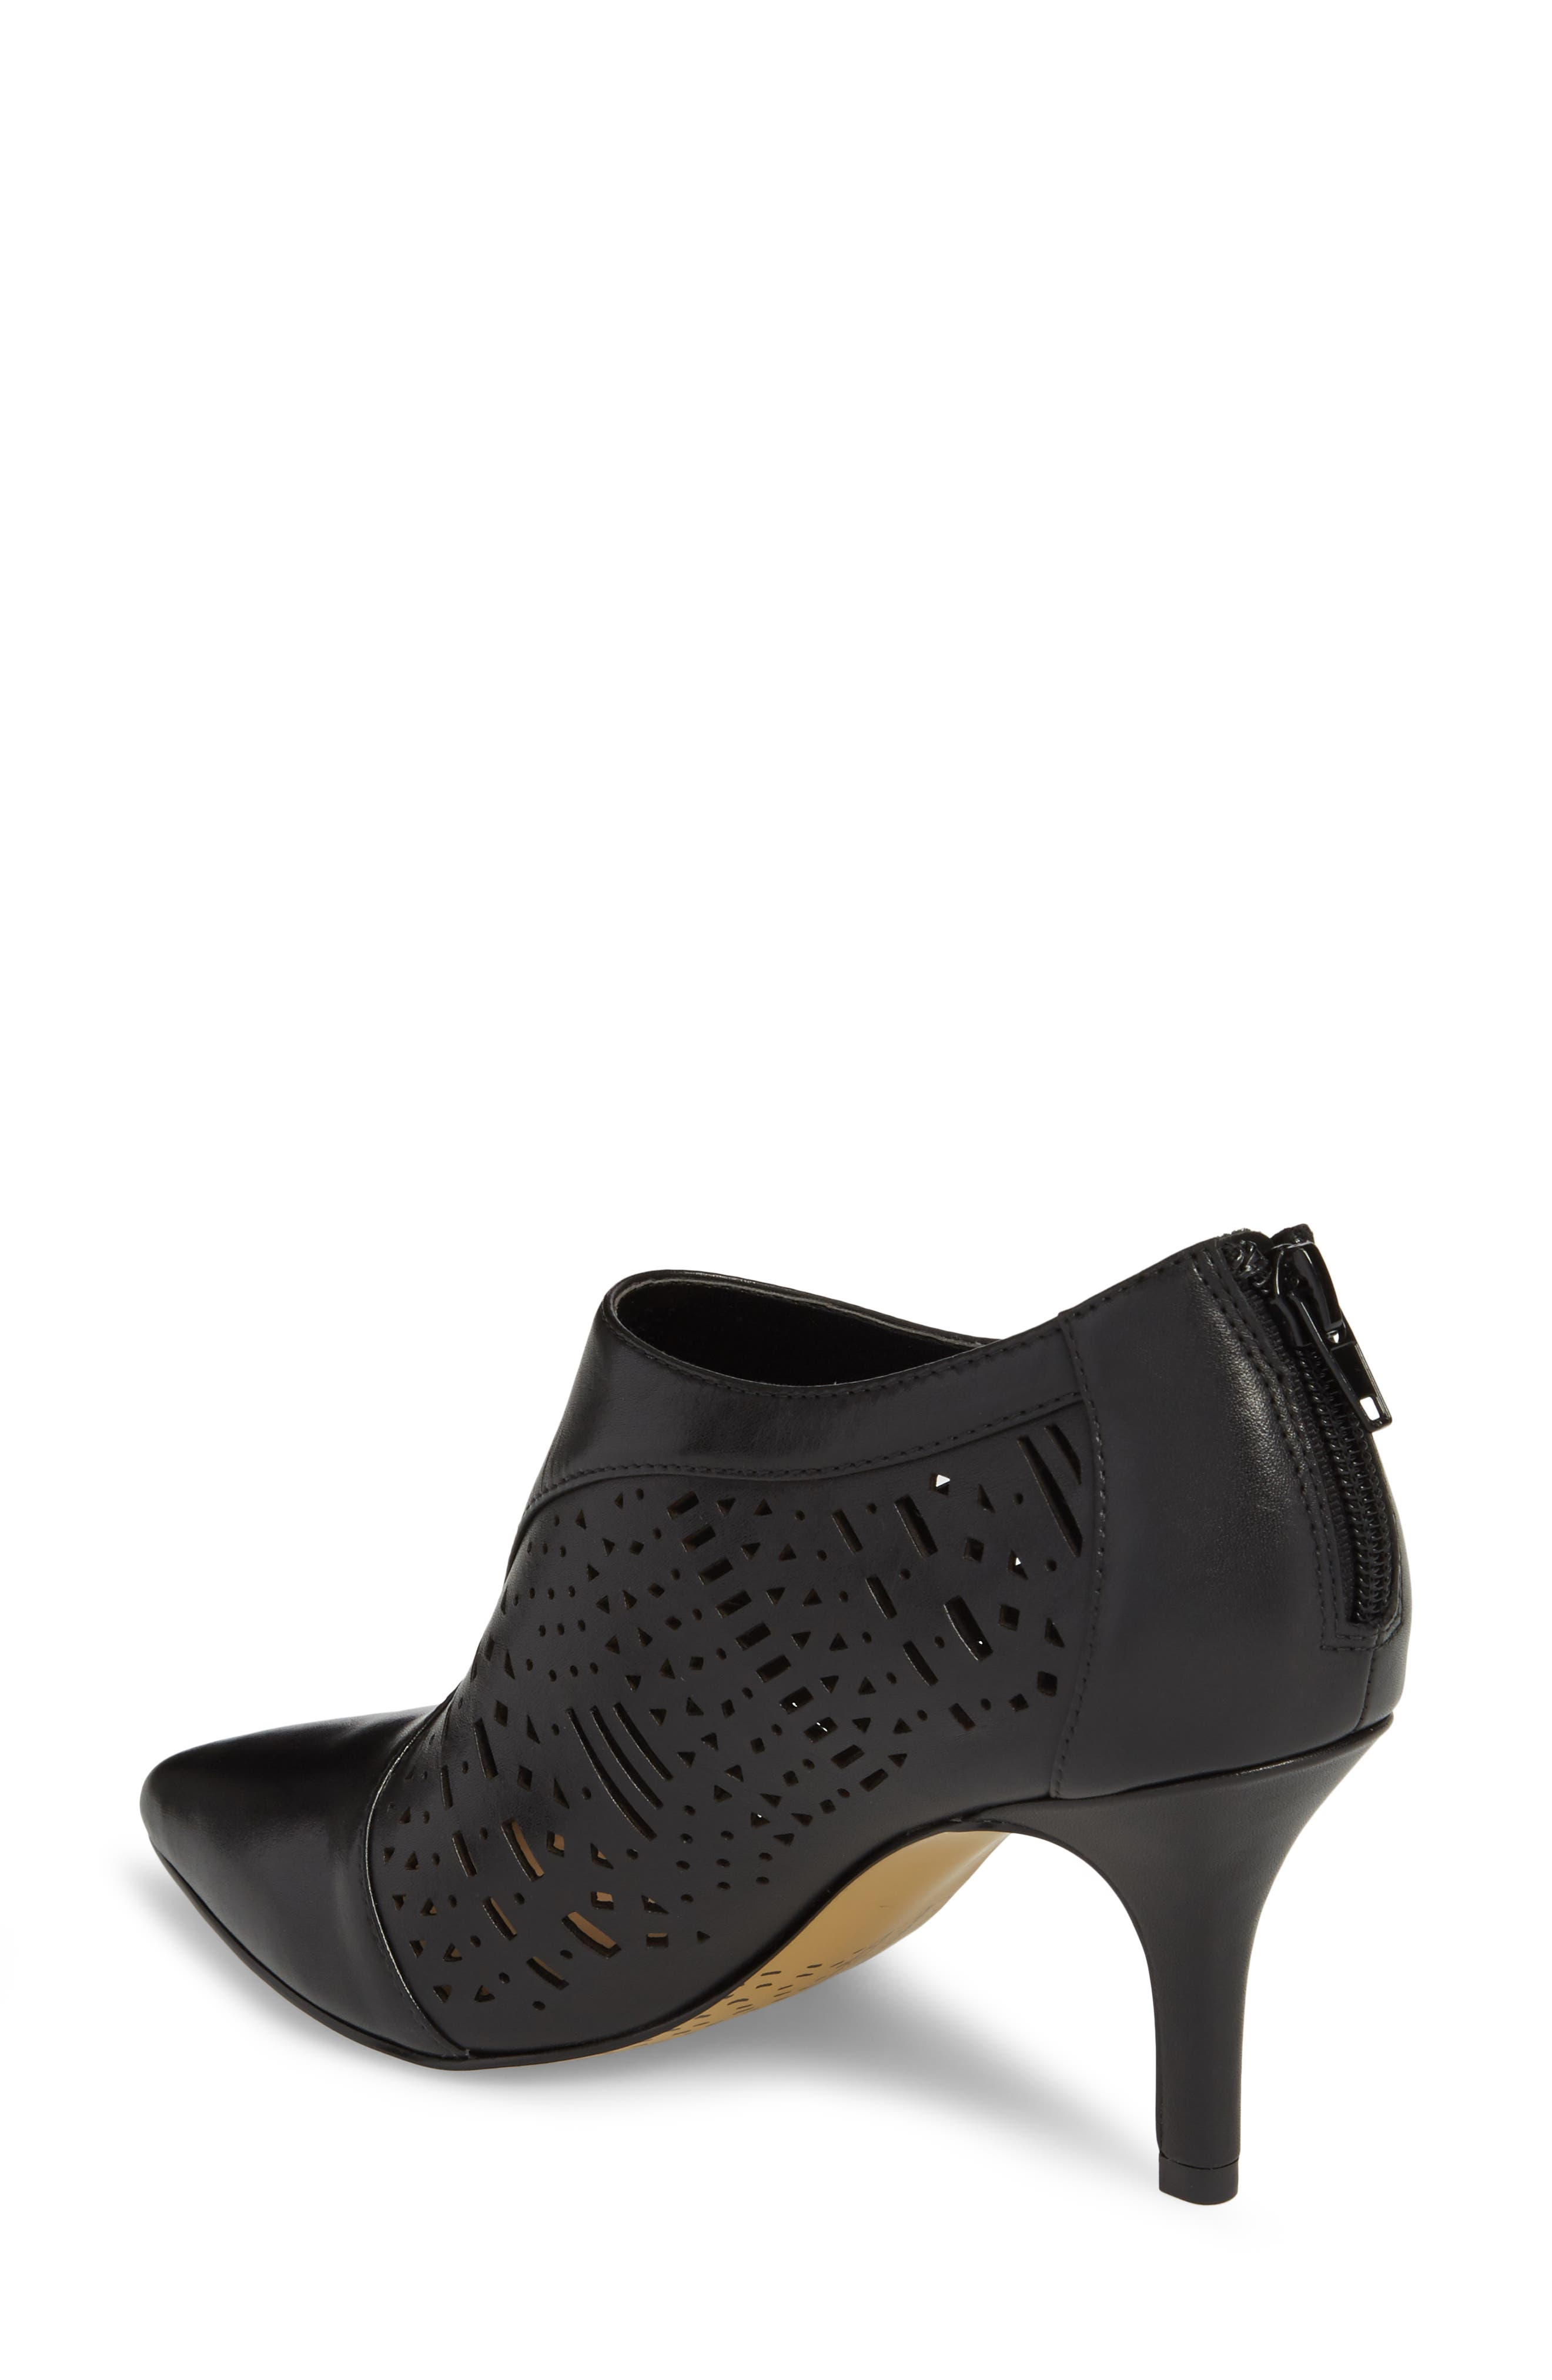 Darlene Laser Perforated Bootie,                             Alternate thumbnail 2, color,                             001